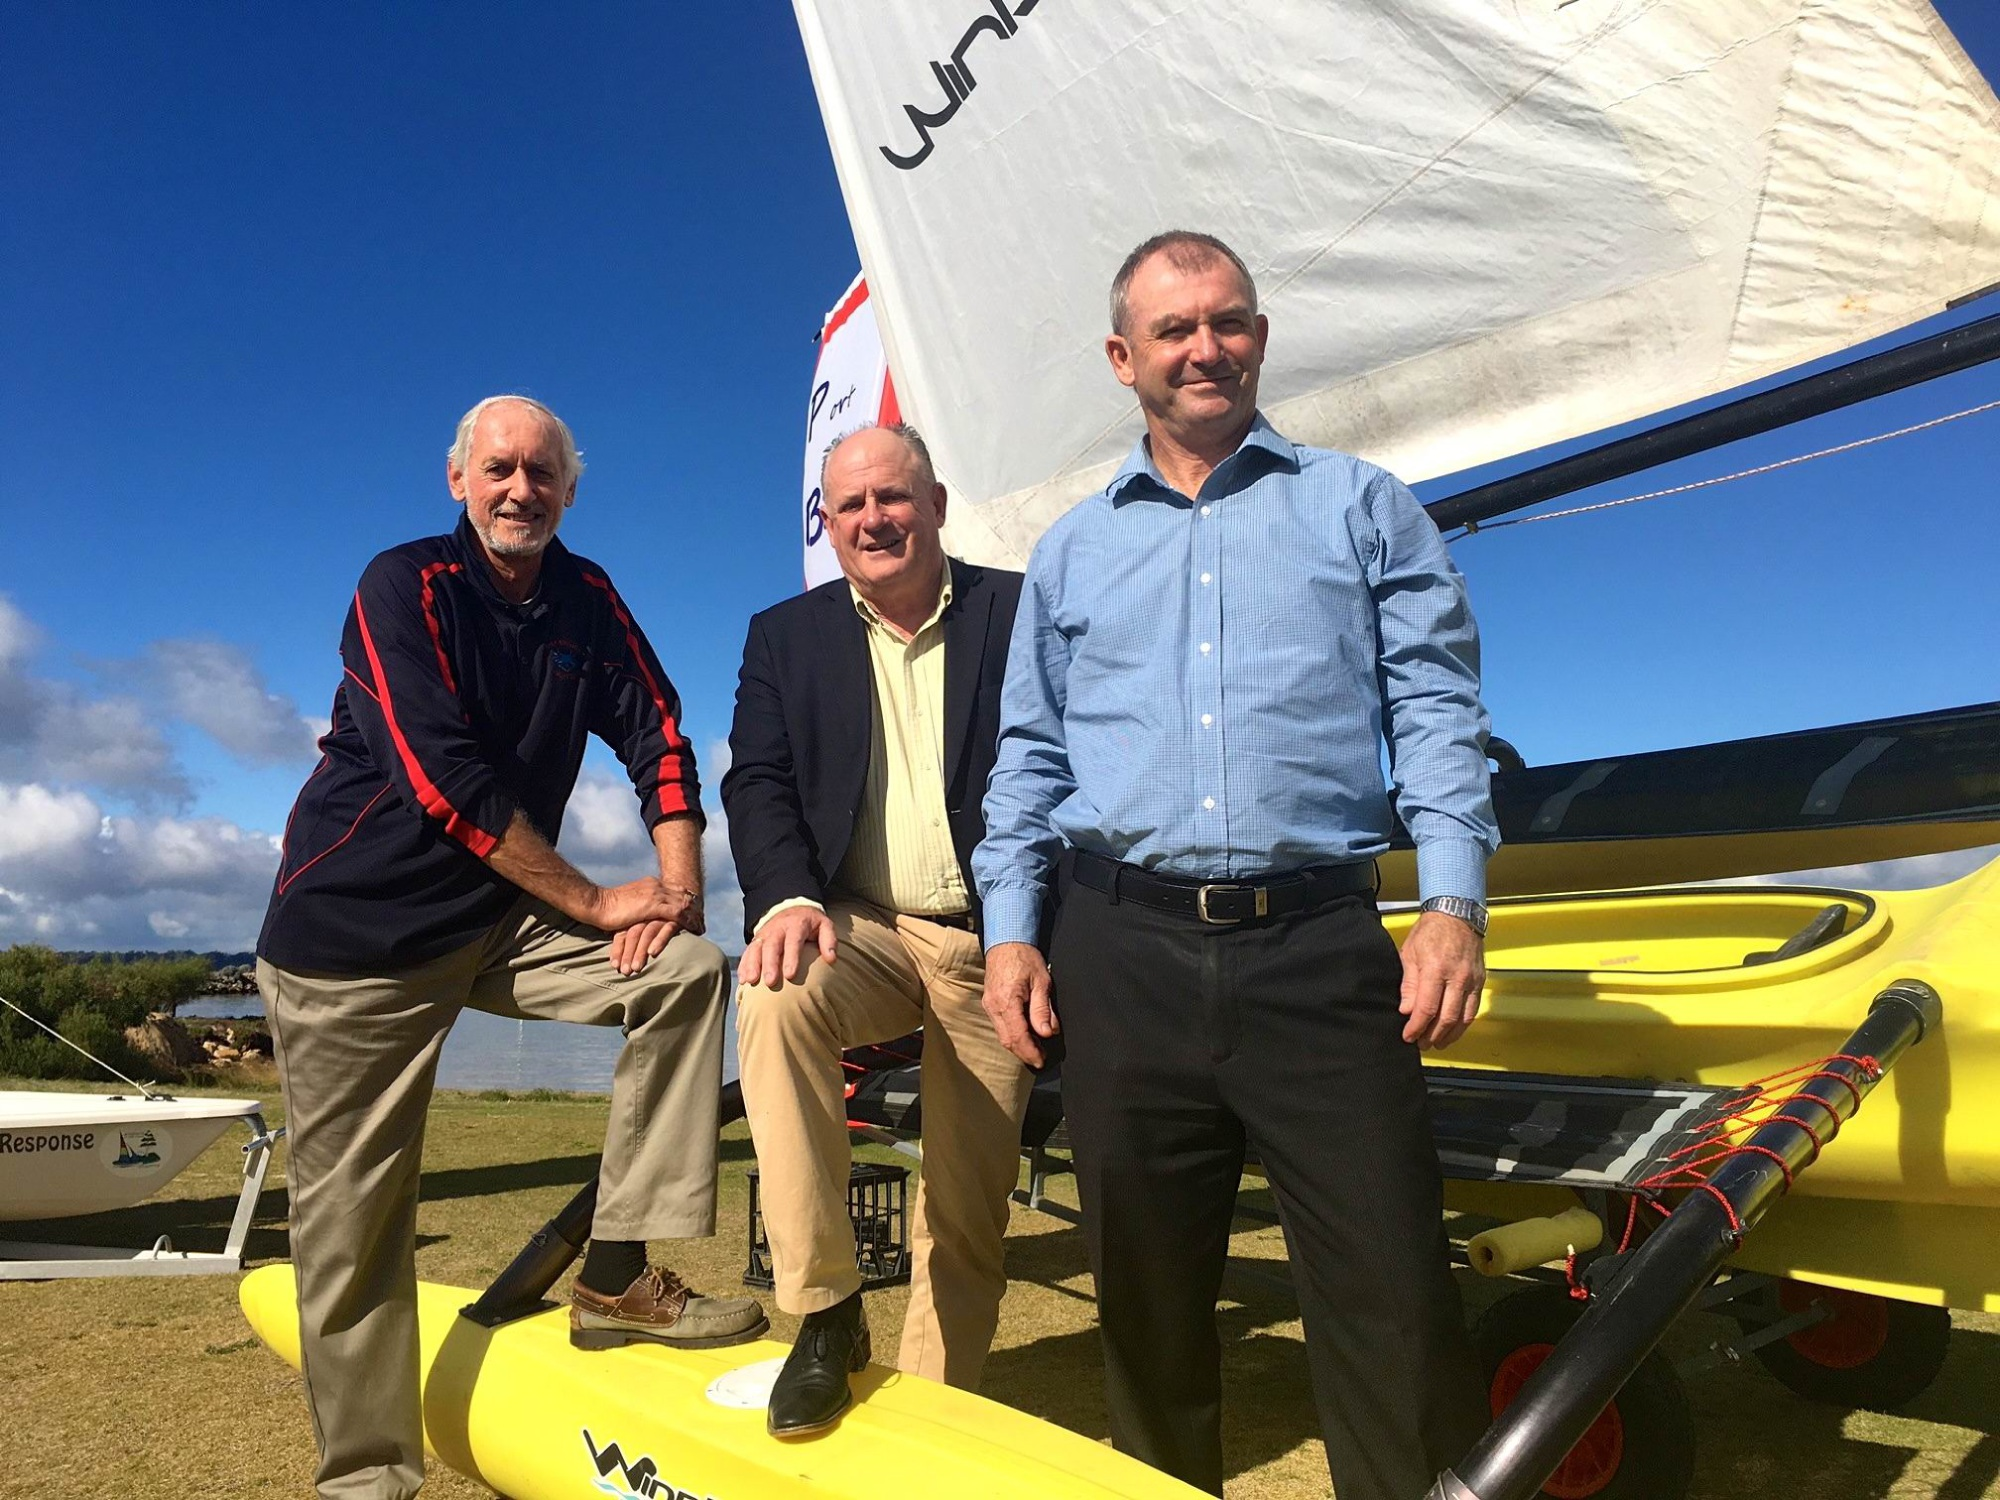 Commodore John Hunt, Peel development Commission chairman Paul Fitzpatrick and Dawesville MLA Kim Hames.